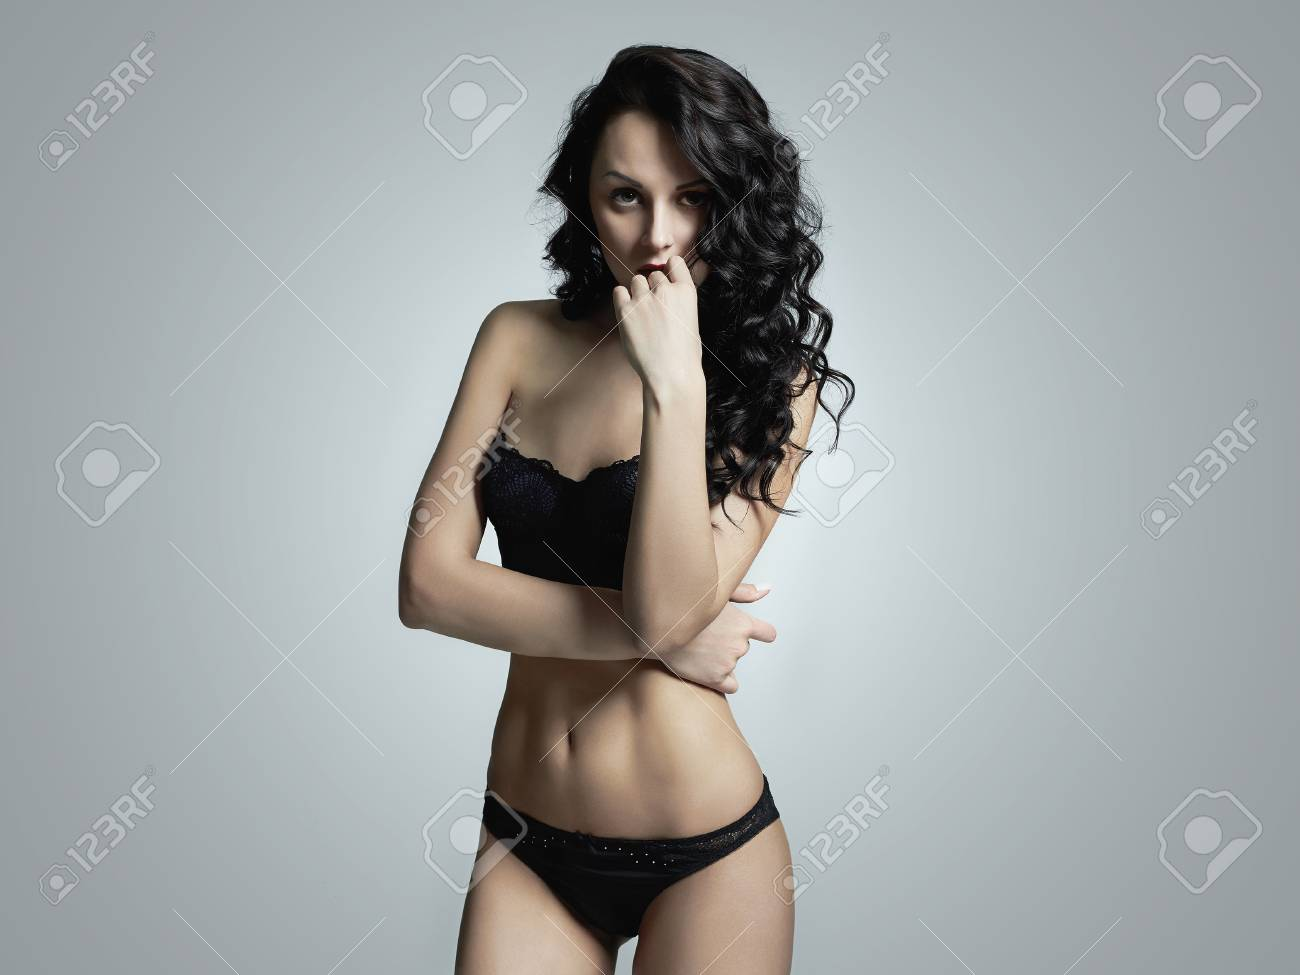 62fc805c5b99 beautiful girl in lingerie. Sexy young woman in underwear Stock Photo -  70072939